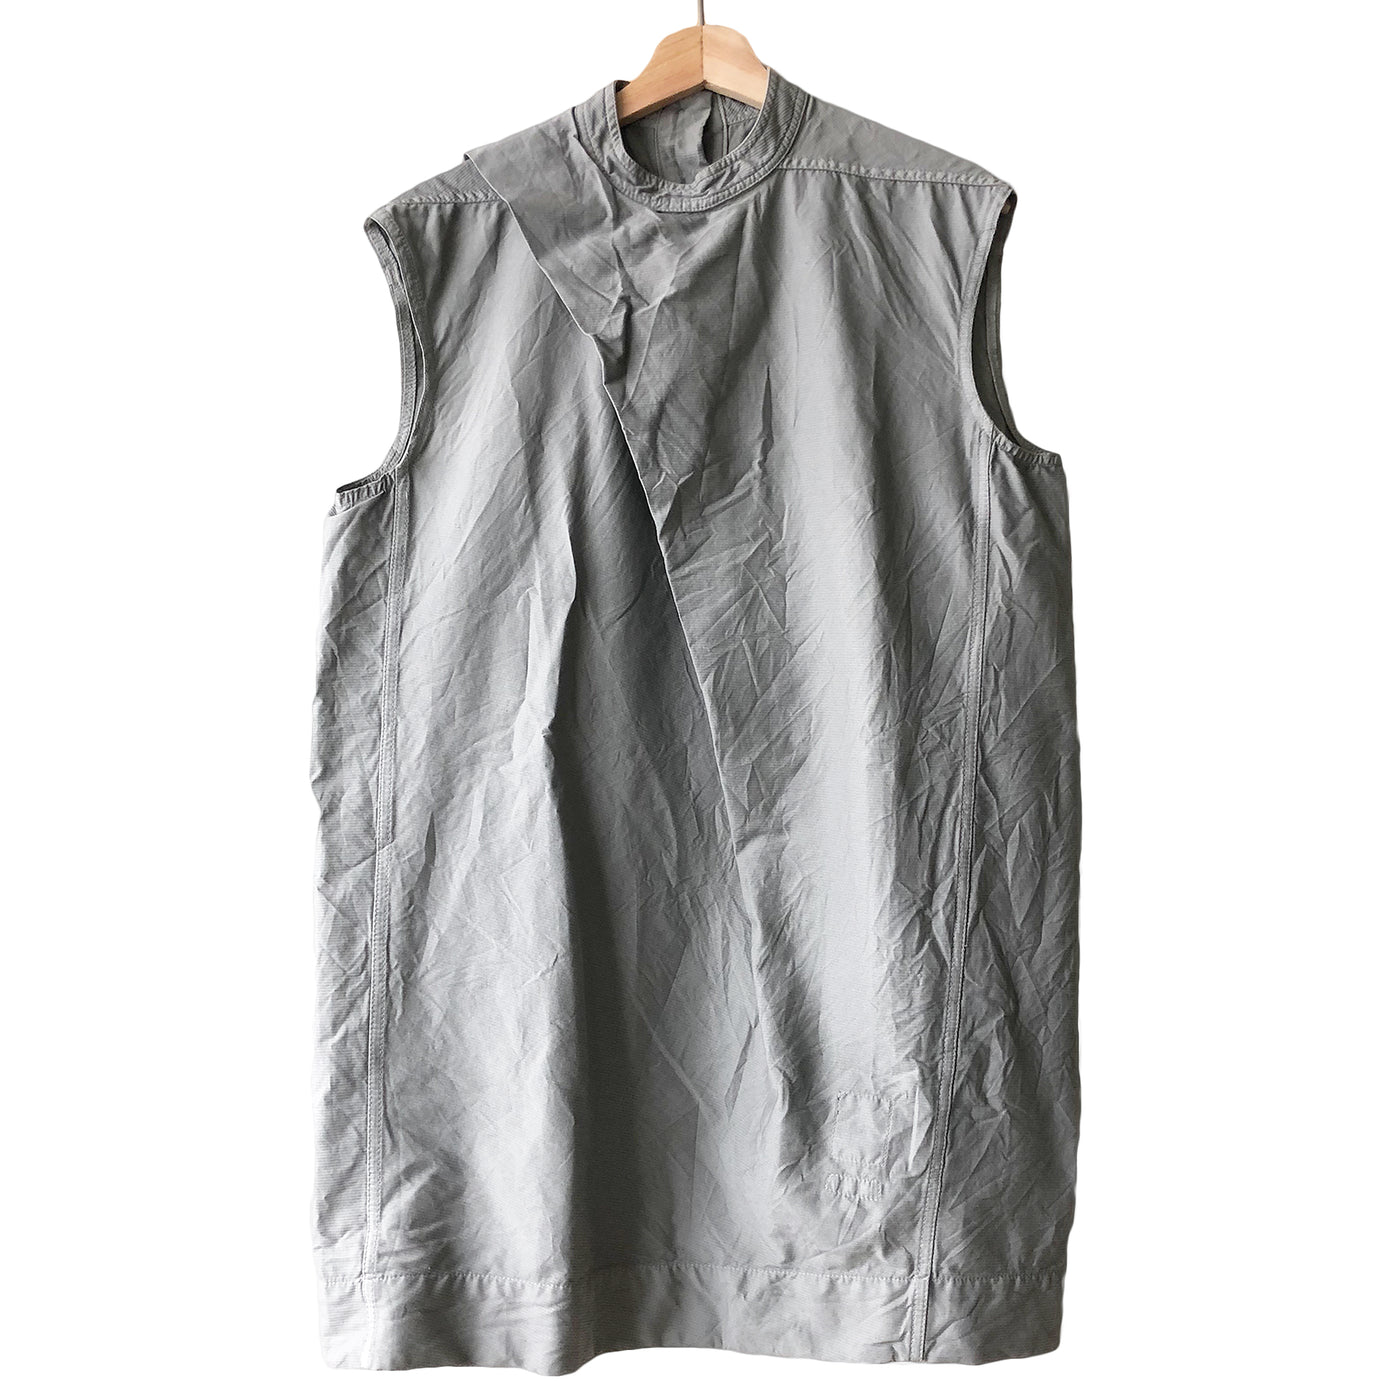 Rick Owens Drkshdw Draped Sleeveless Shirt - SS16